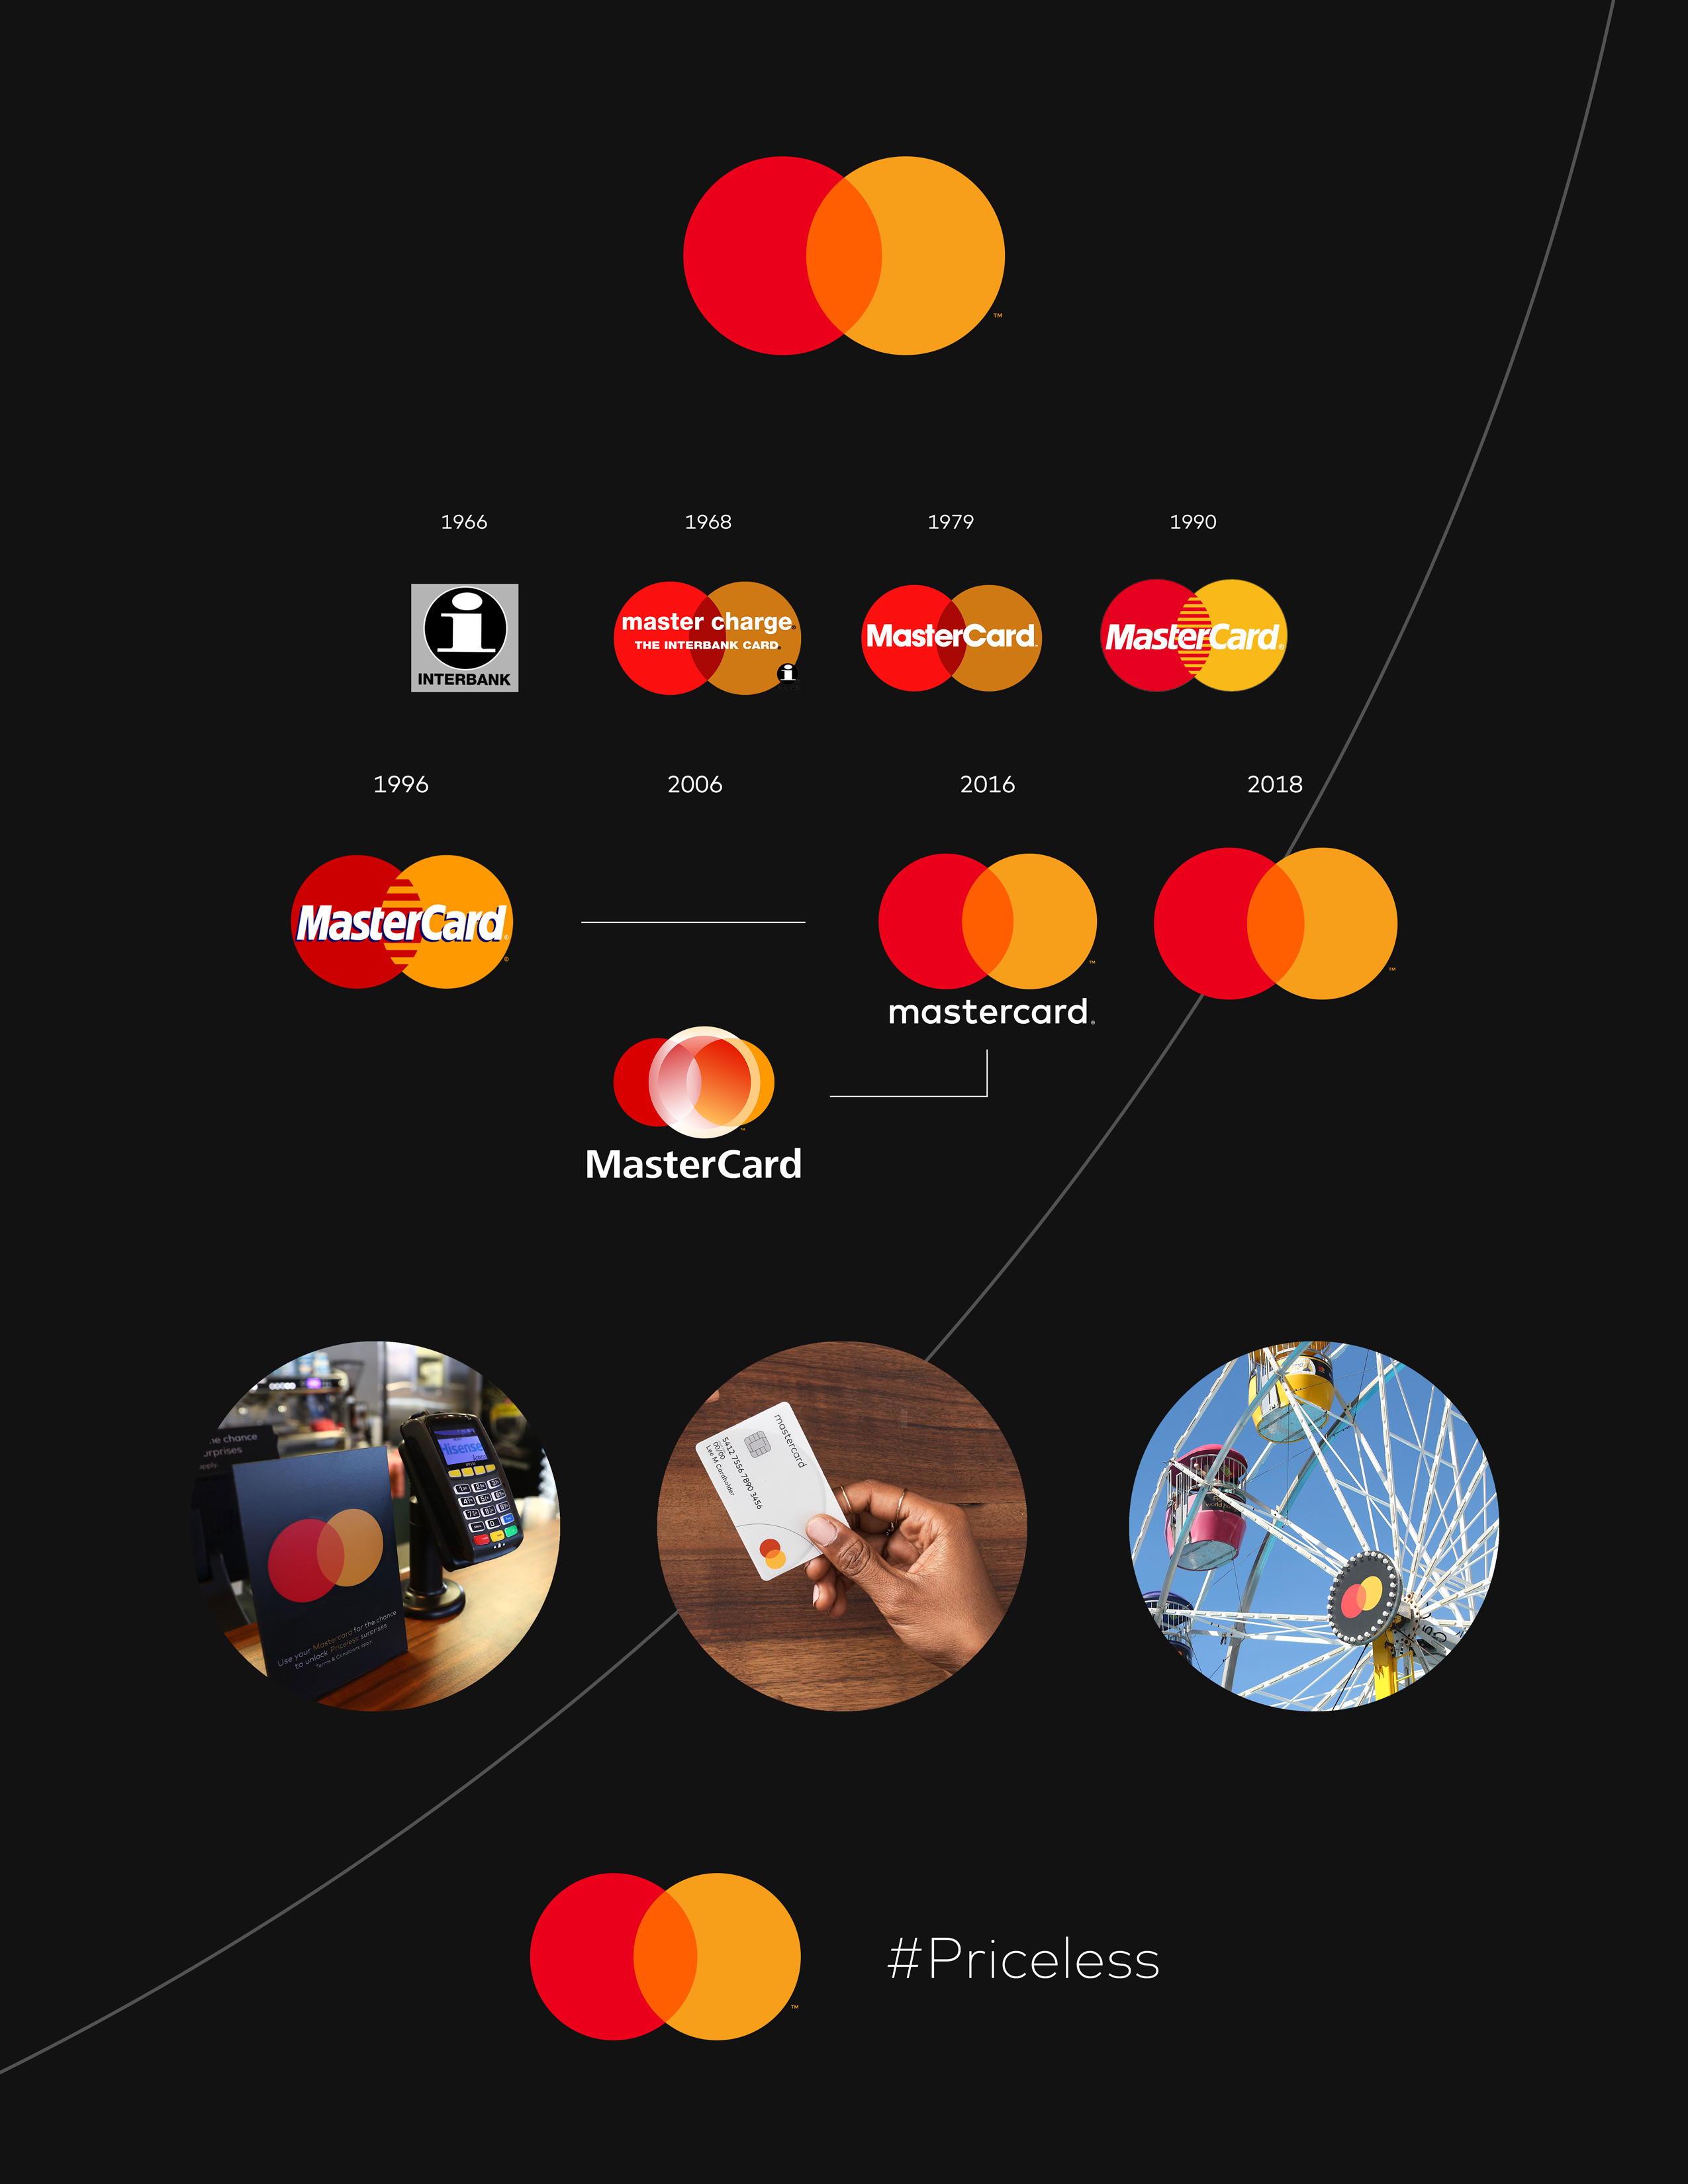 Mastercard Evolves Its Brand Mark by Dropping its Name.